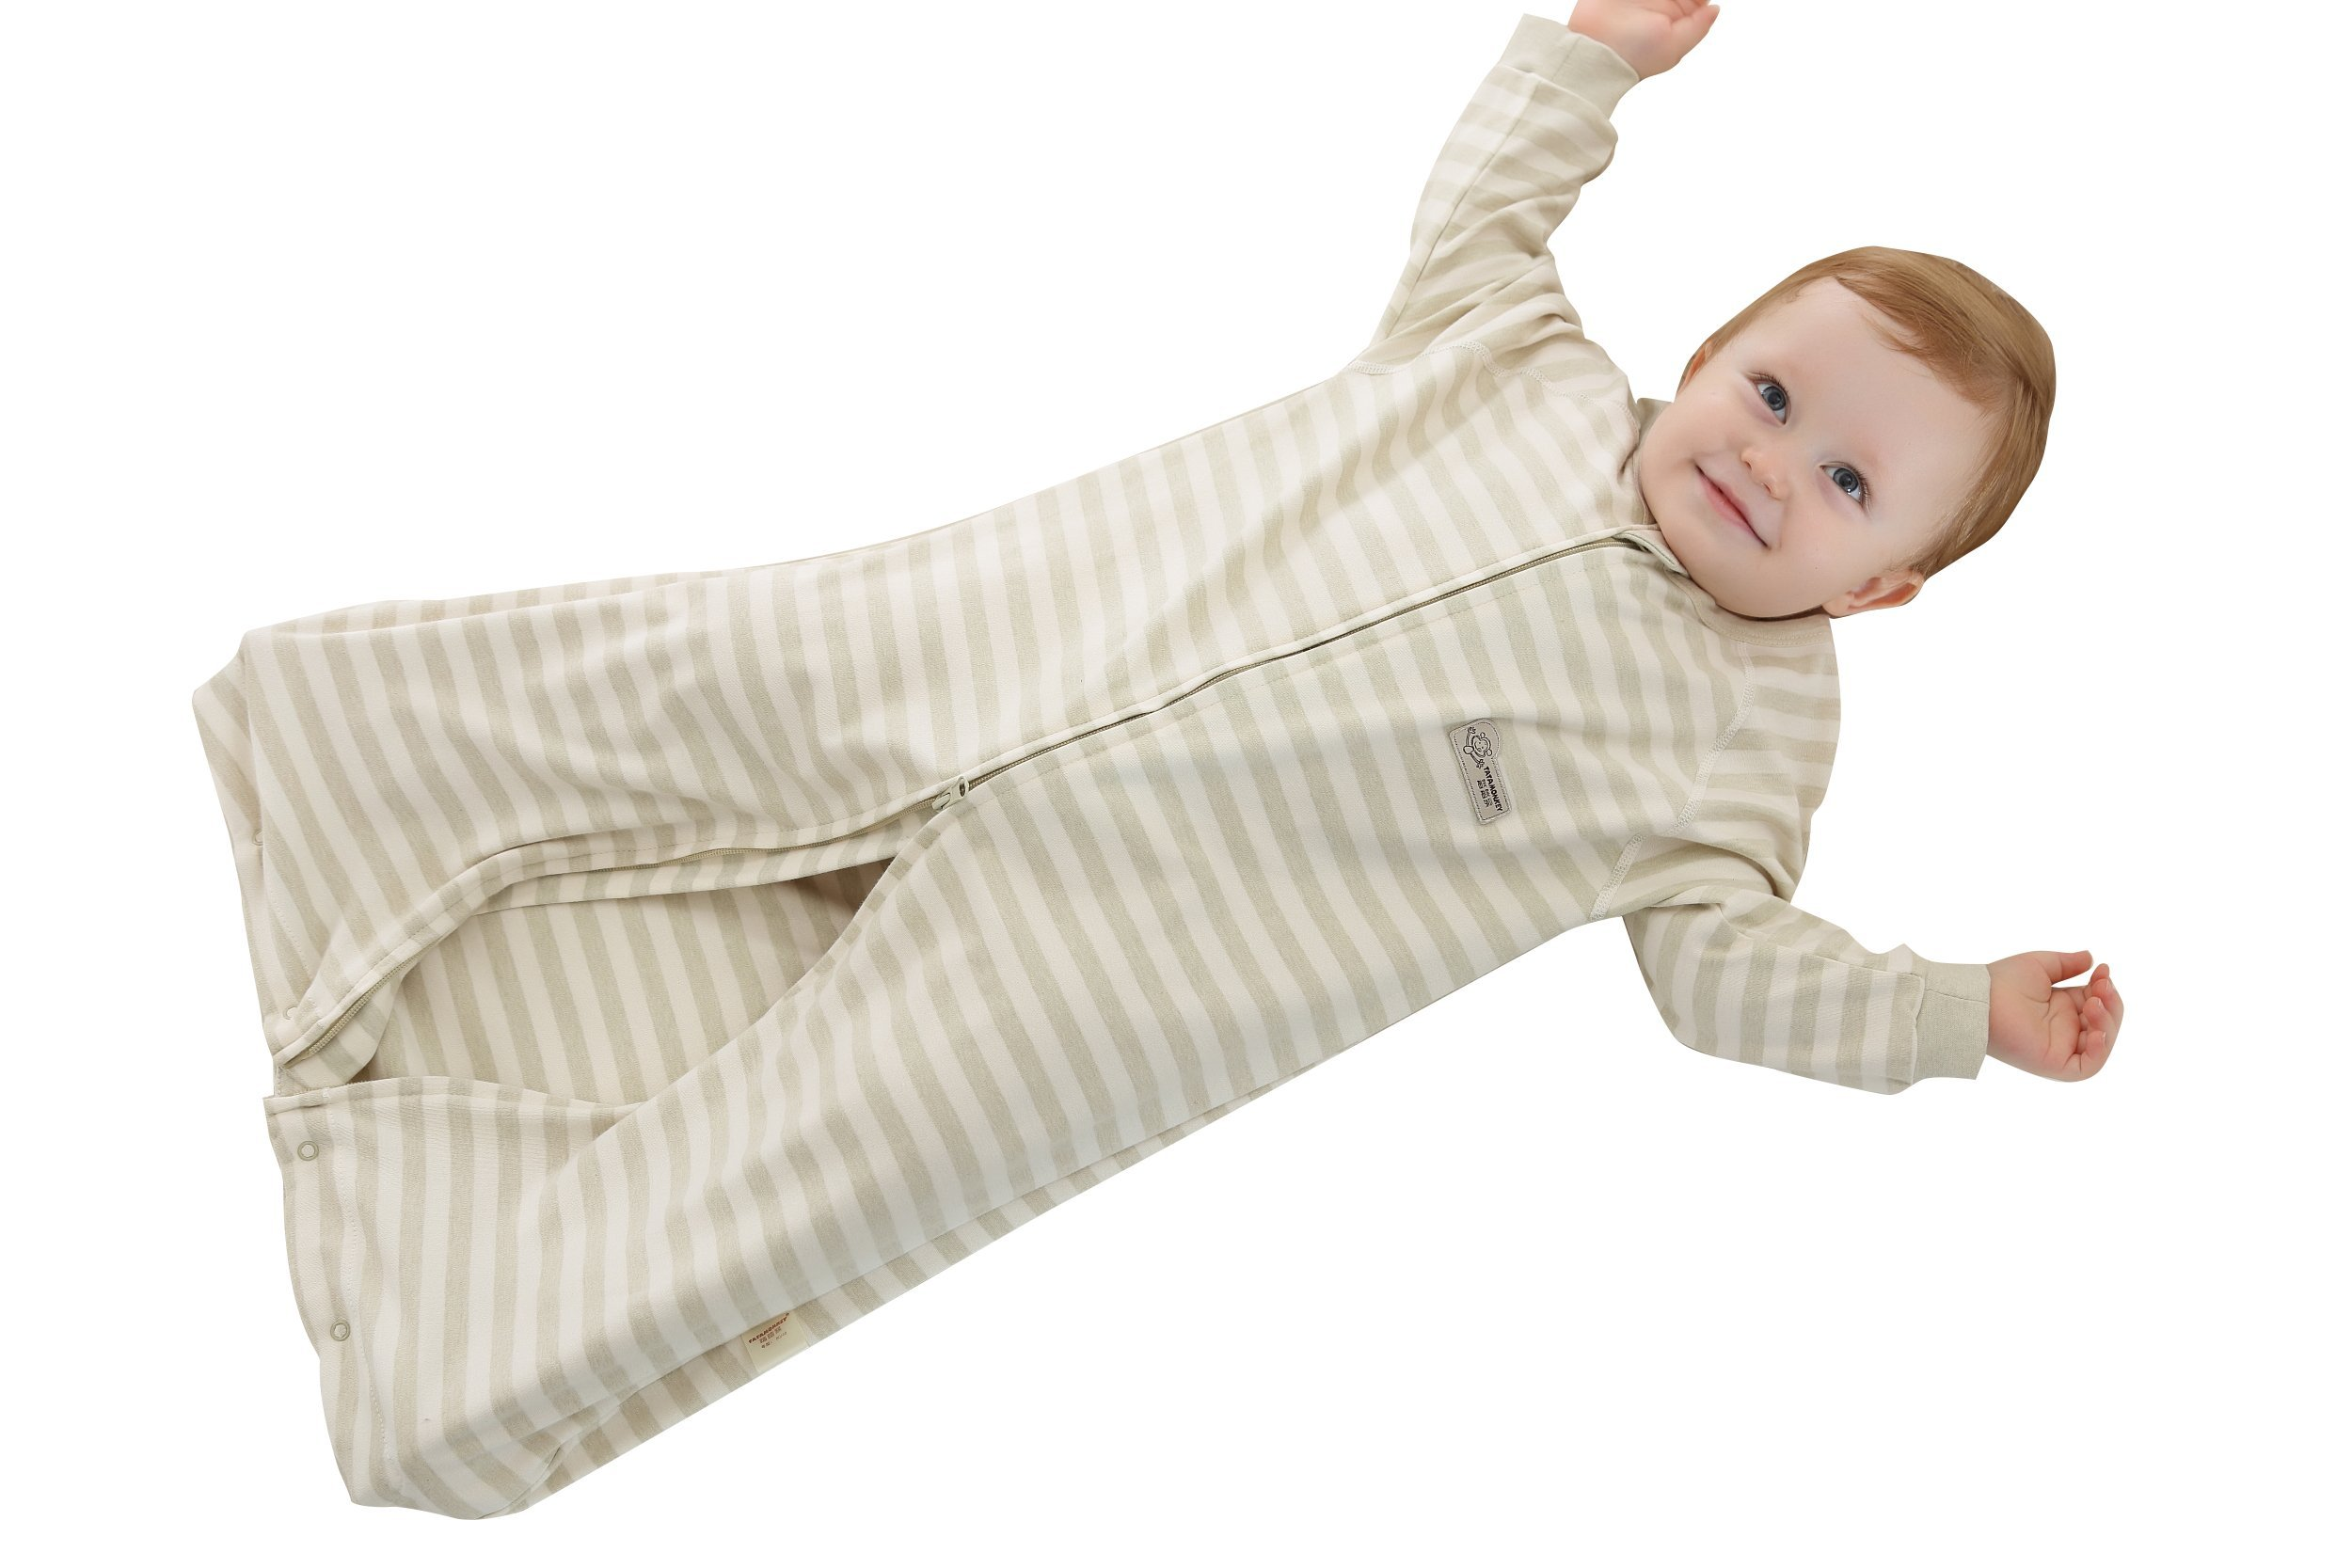 Luyusbaby Baby Sleeping Bag 100% Cotton Toddler Wearable Blanket  Green Stripes Medium by Luyusbaby